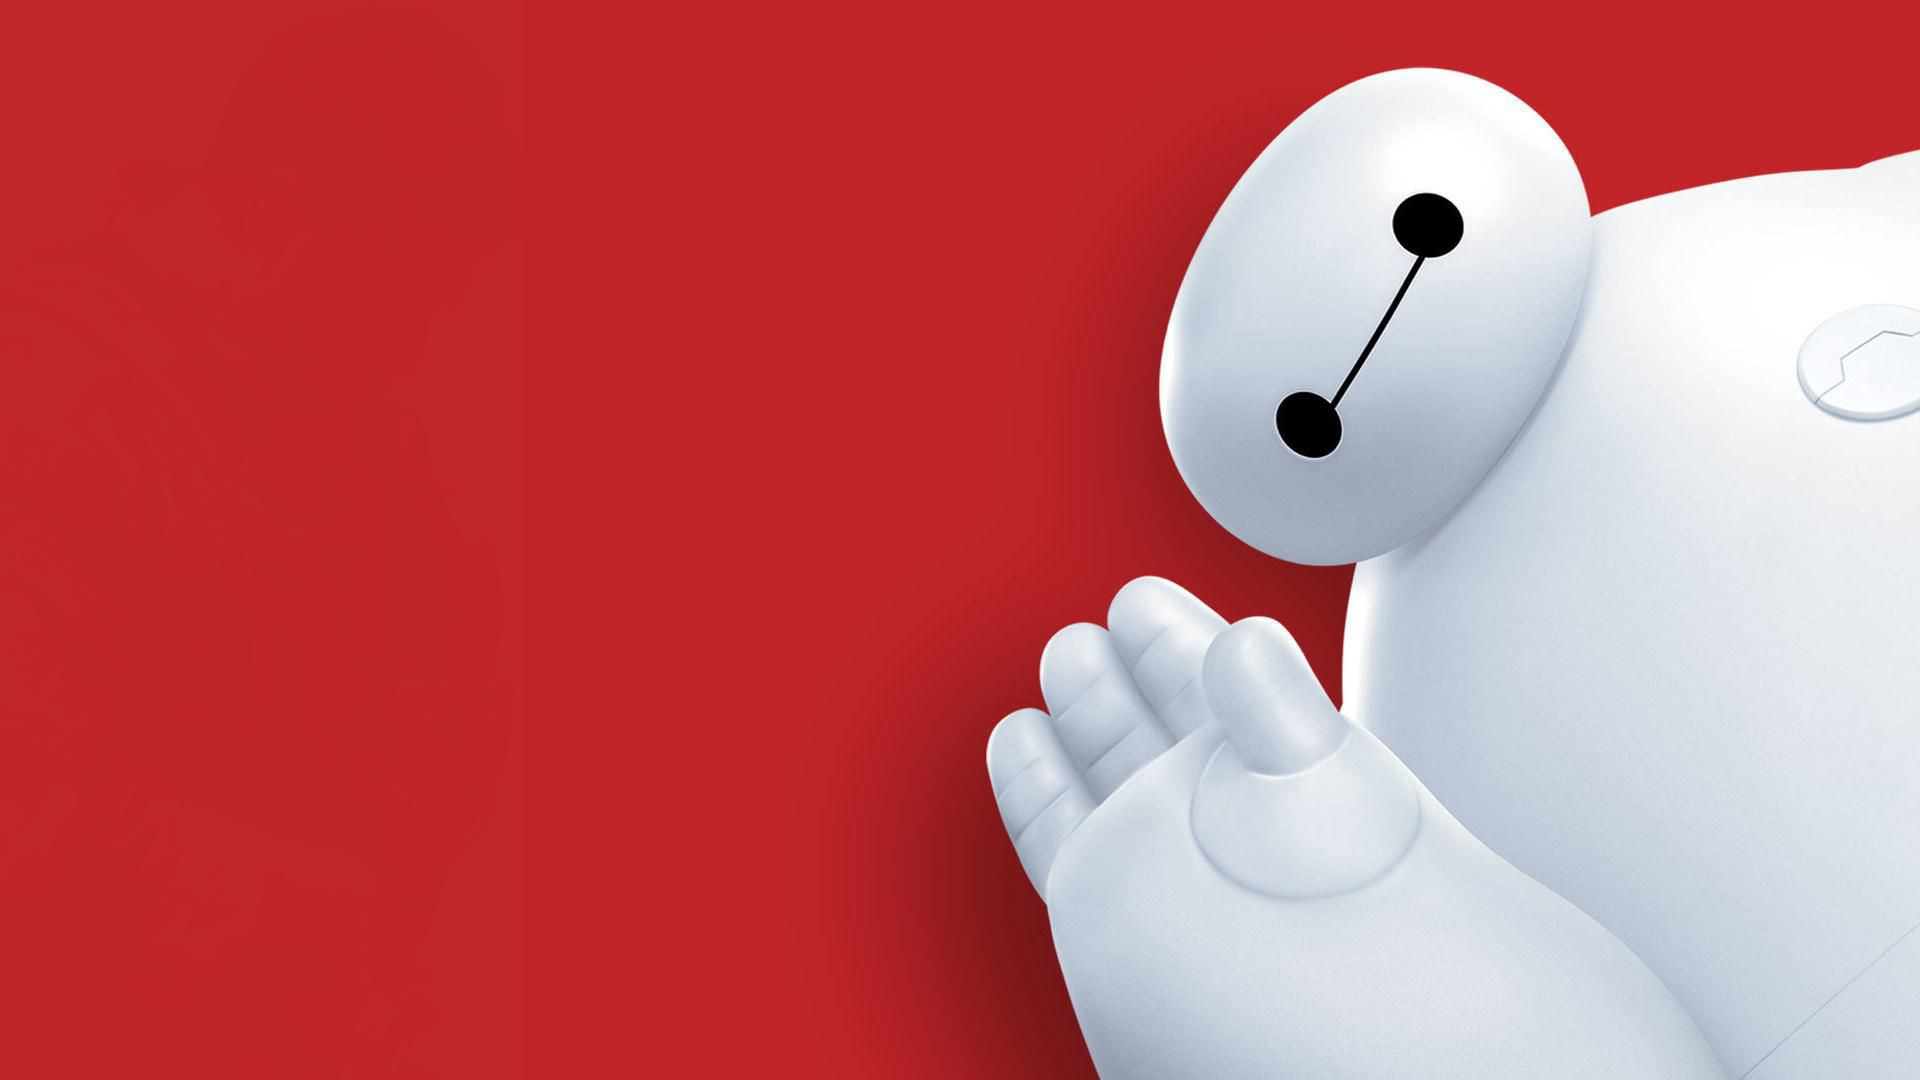 Big Hero 6 Disney Wallpapers